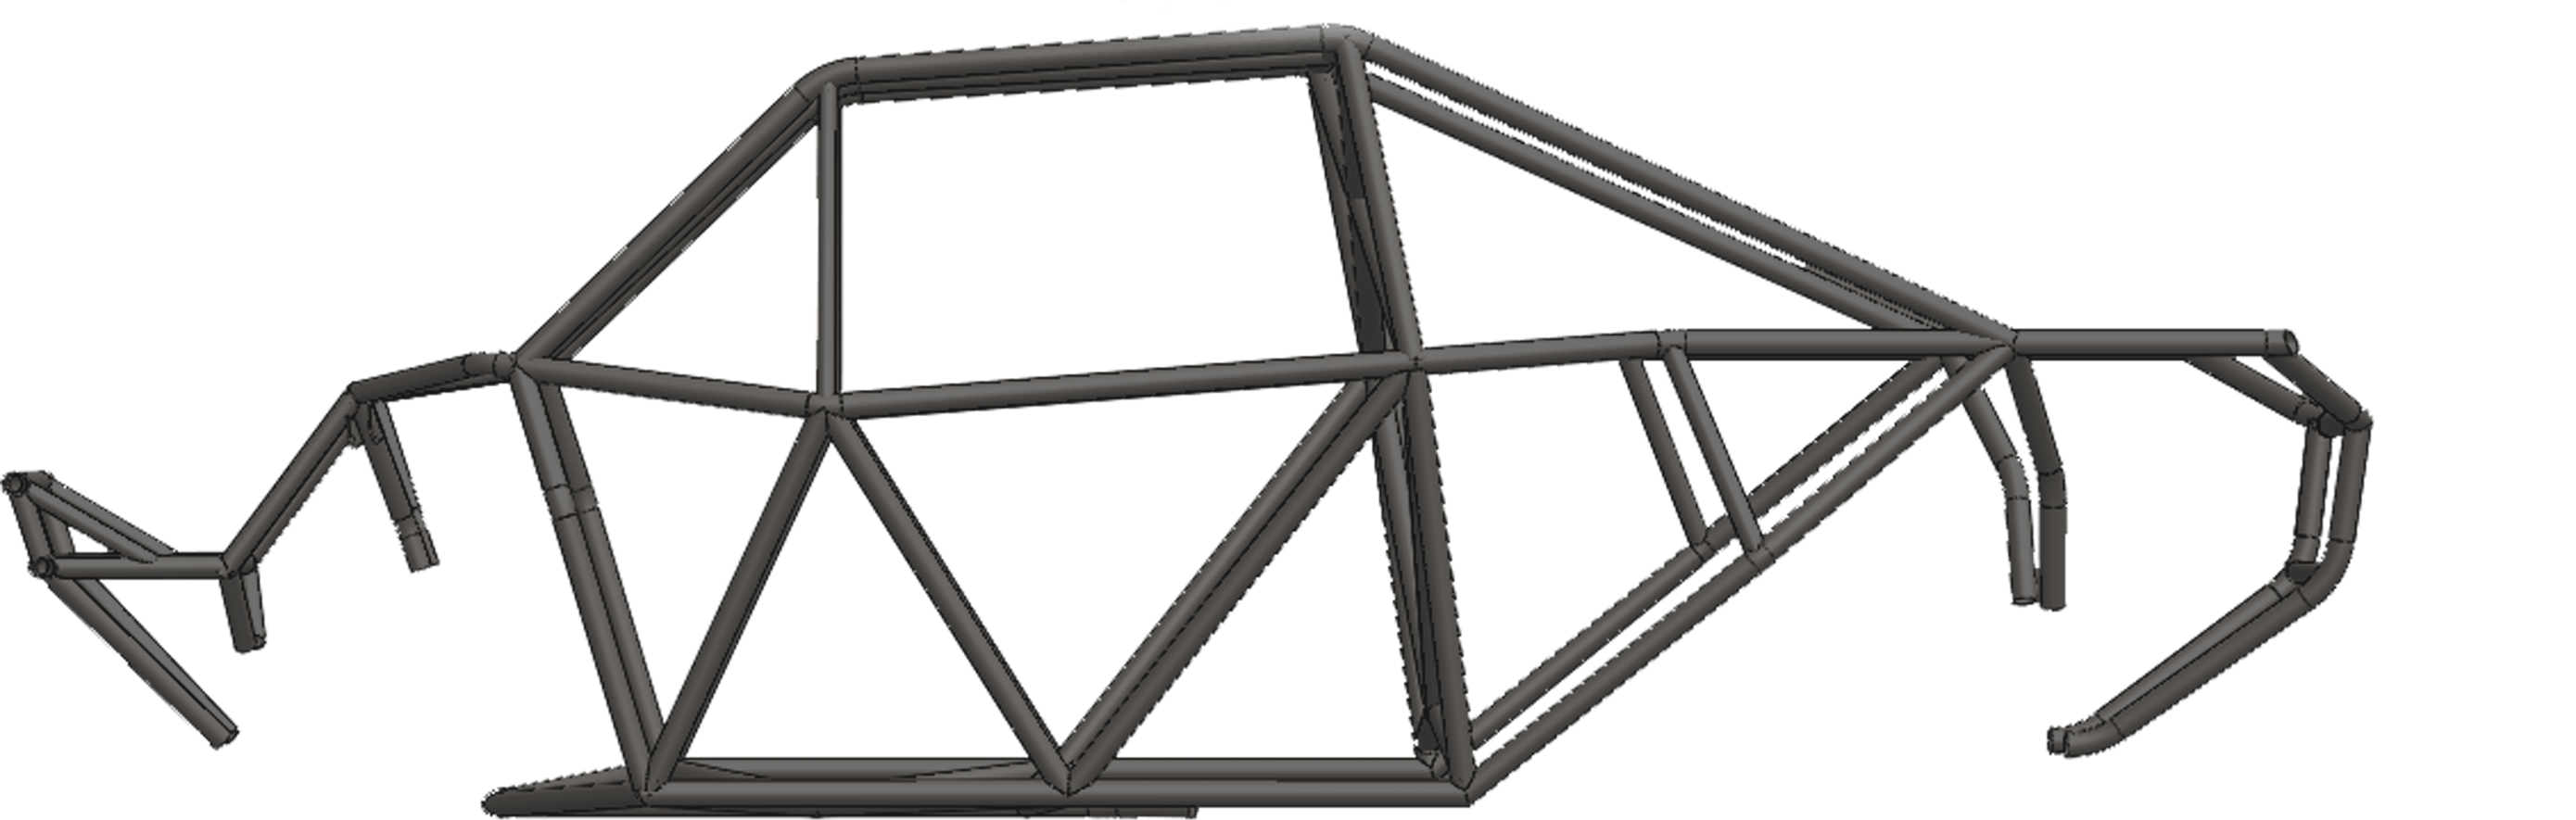 cage_construction_race_chassis